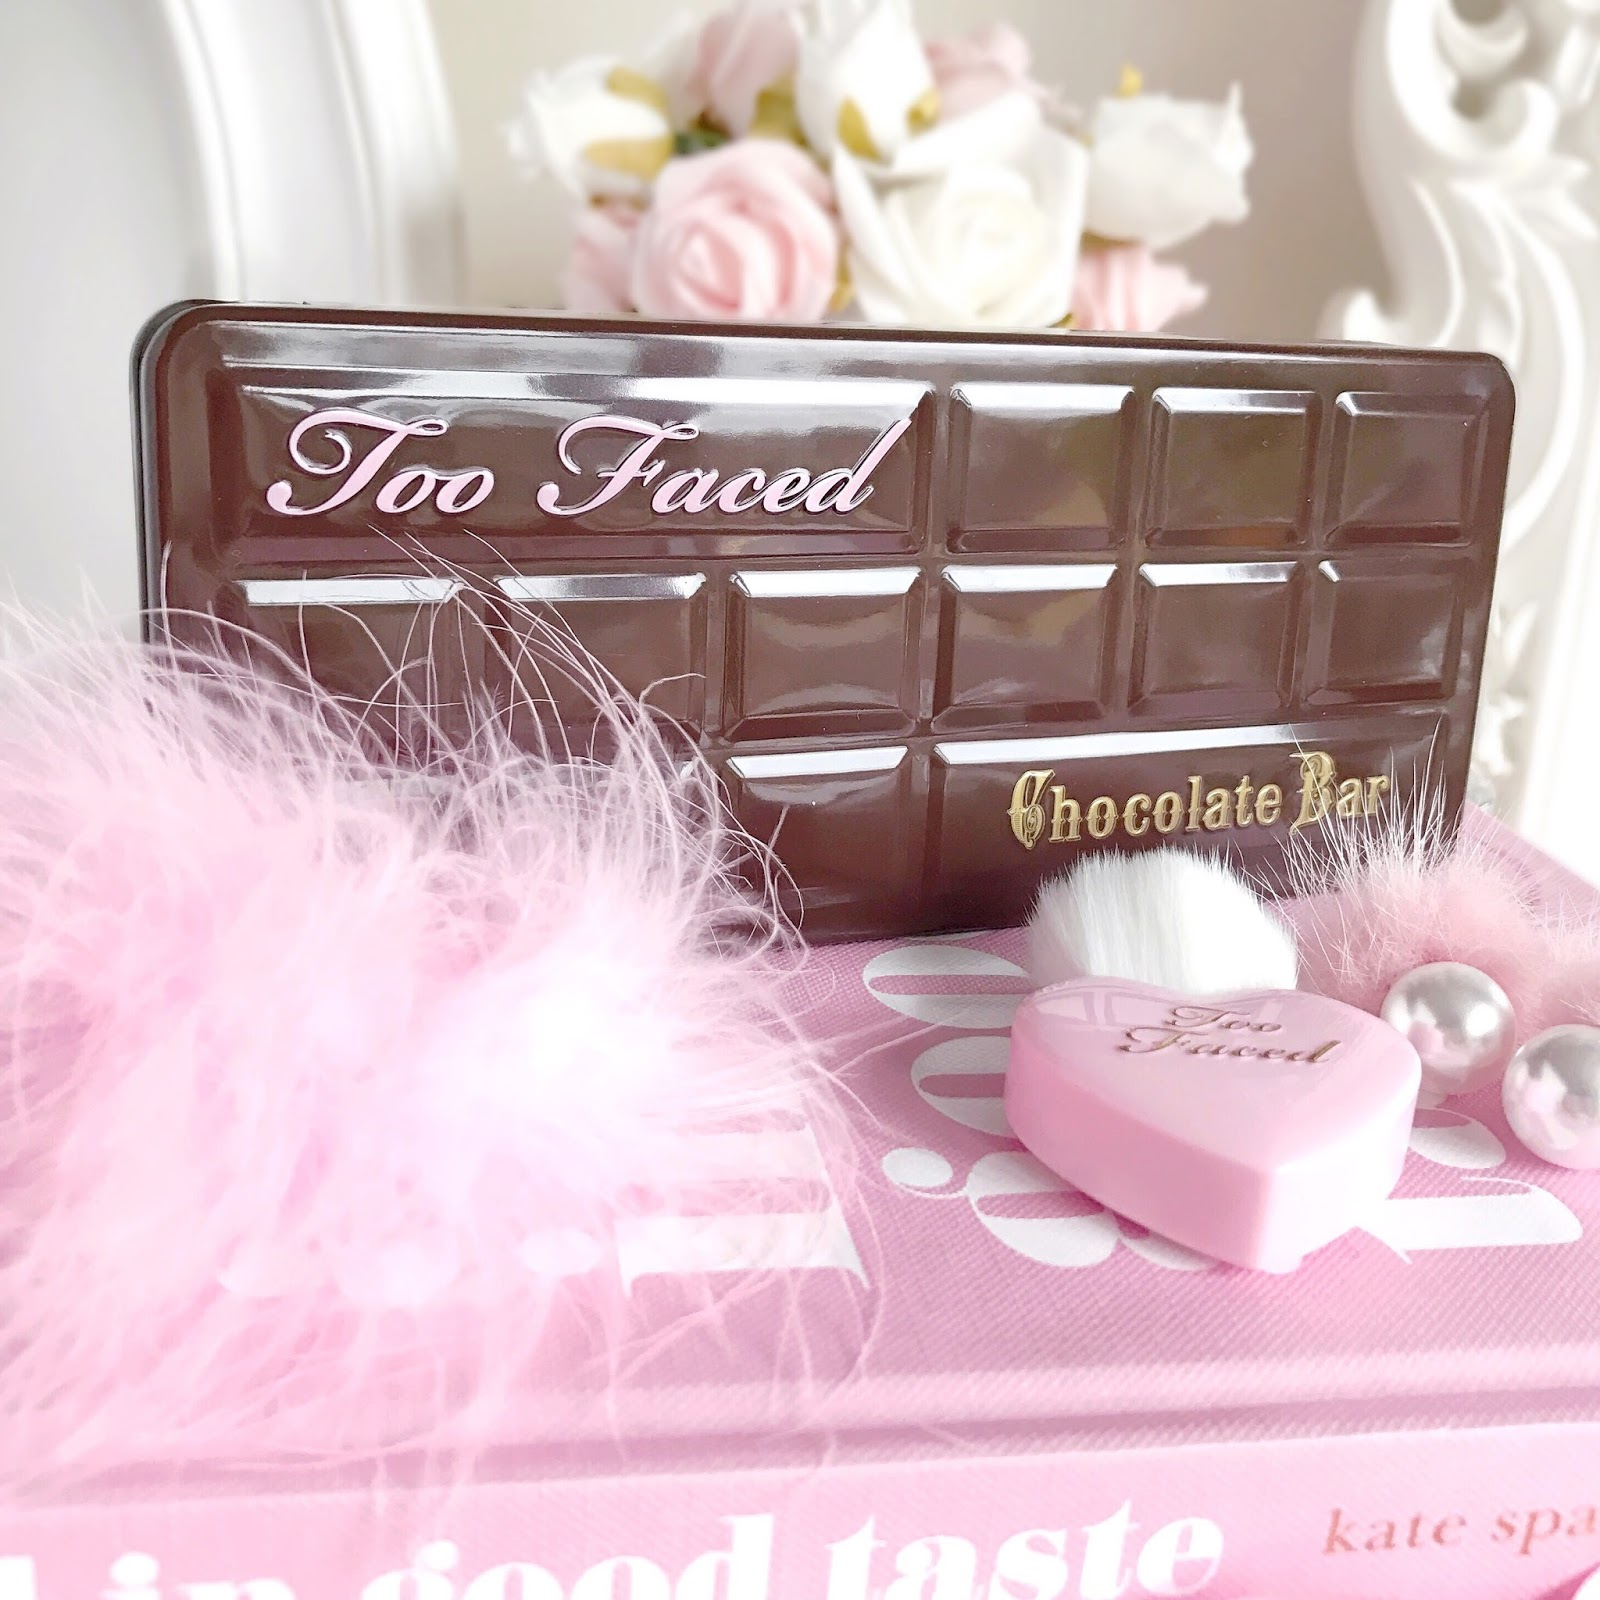 Chocolate Bar Palette | Too Faced X Skinnydip